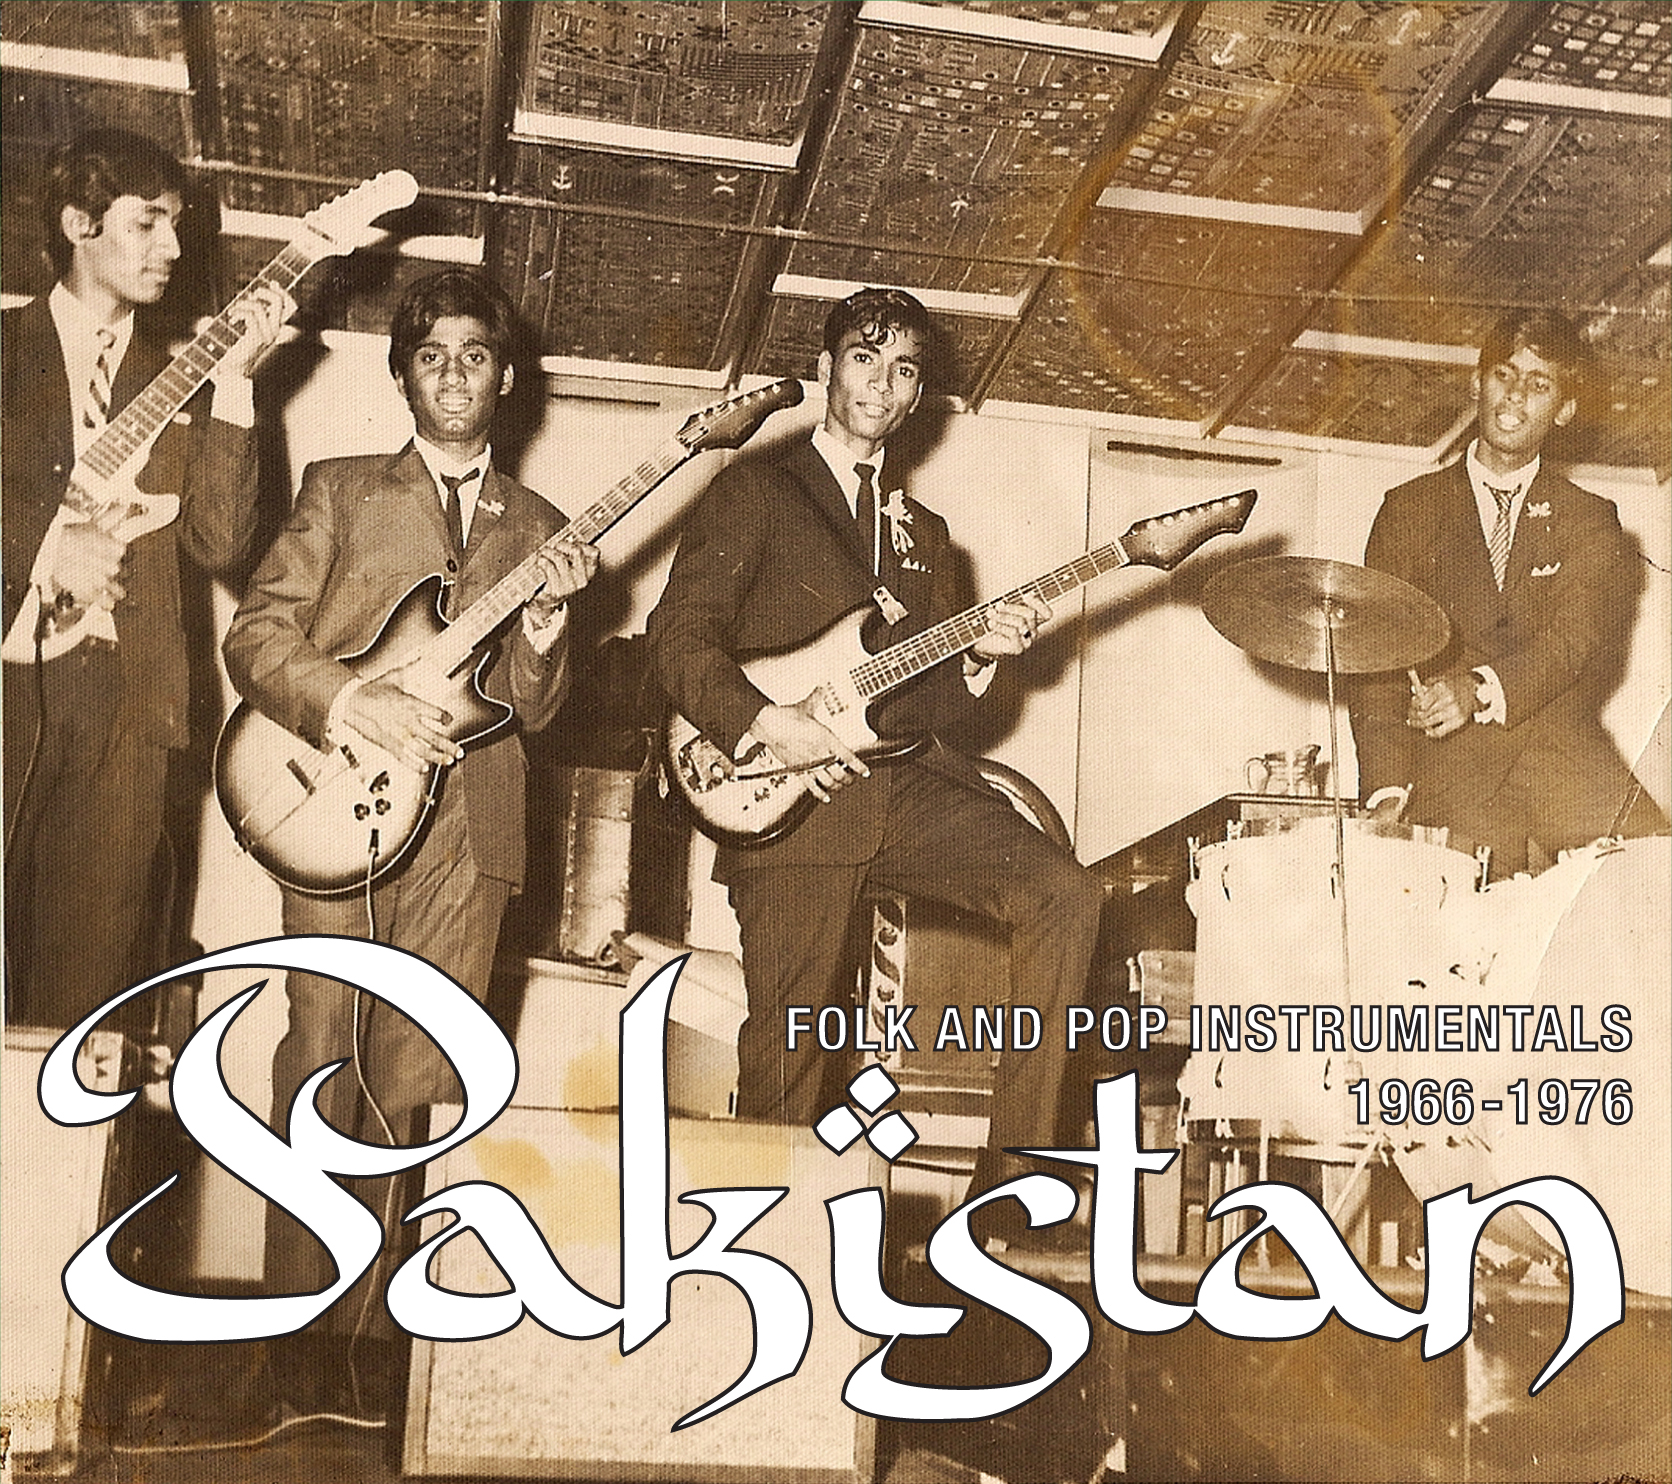 PAKISTAN: Instrumental Folk & Pop Sounds, 1966-1976